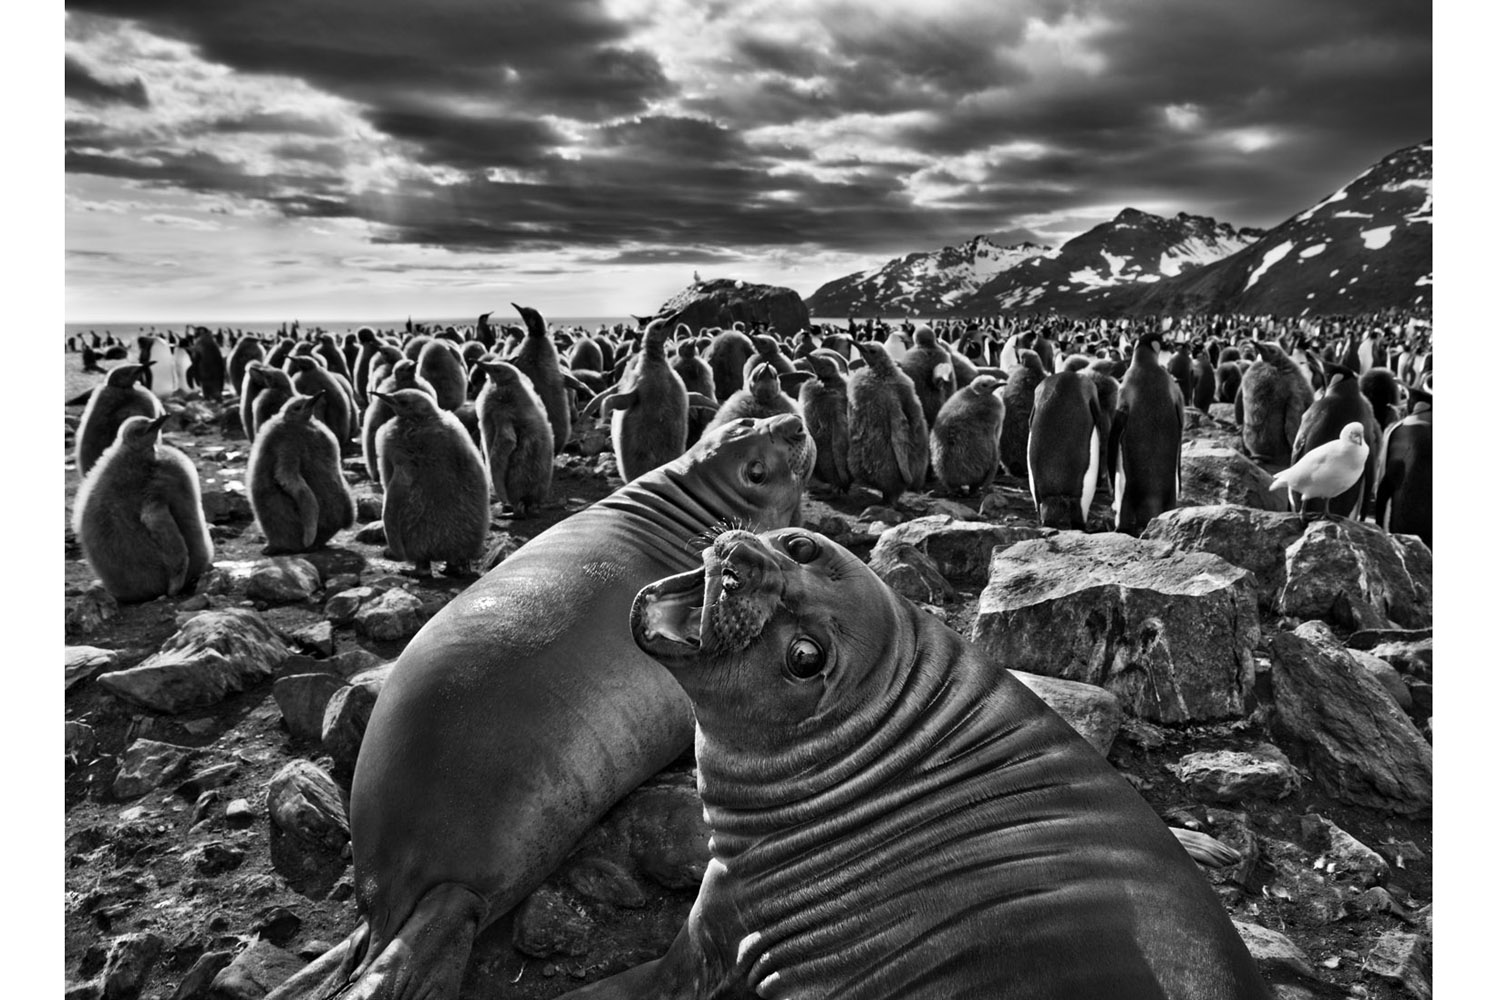 Pictured: On South Georgia, a barren island in the far South Atlantic, a pair of southern elephant seal calves beckon before a colony of king penguins.                                Genesis, Sebastiao Salgado's epic tome, records the last vestiges of Earth untouched by man. Page after page, it's a stunning masterpiece — a true book for the ages. —Kira Pollack, director of photography, TIME